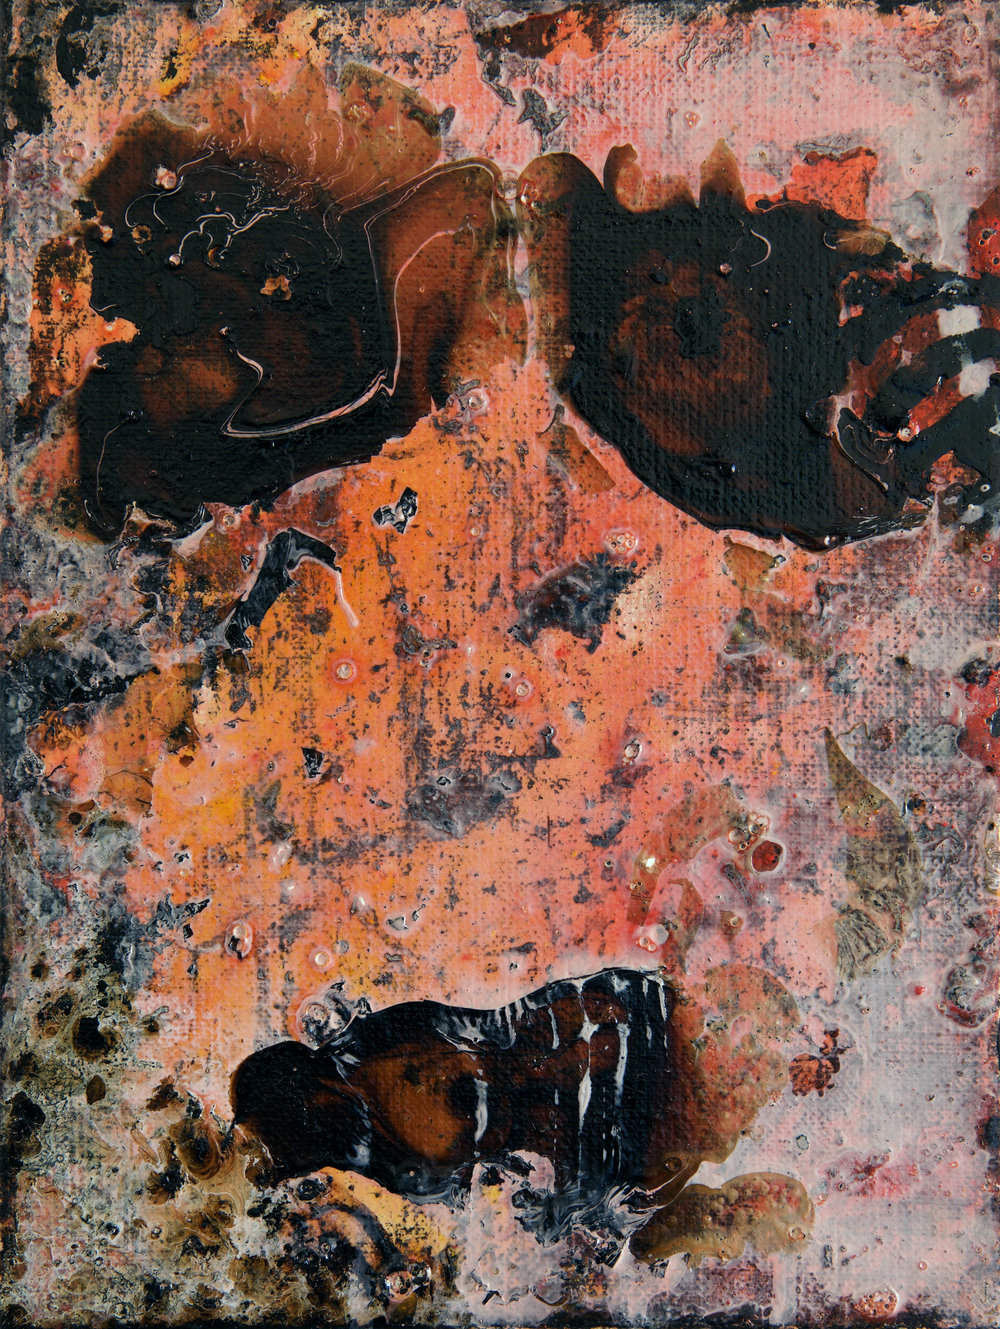 Tar 5 , 2016  Hanni Zurob Tar and pigments on canvas 24 x 18 cm